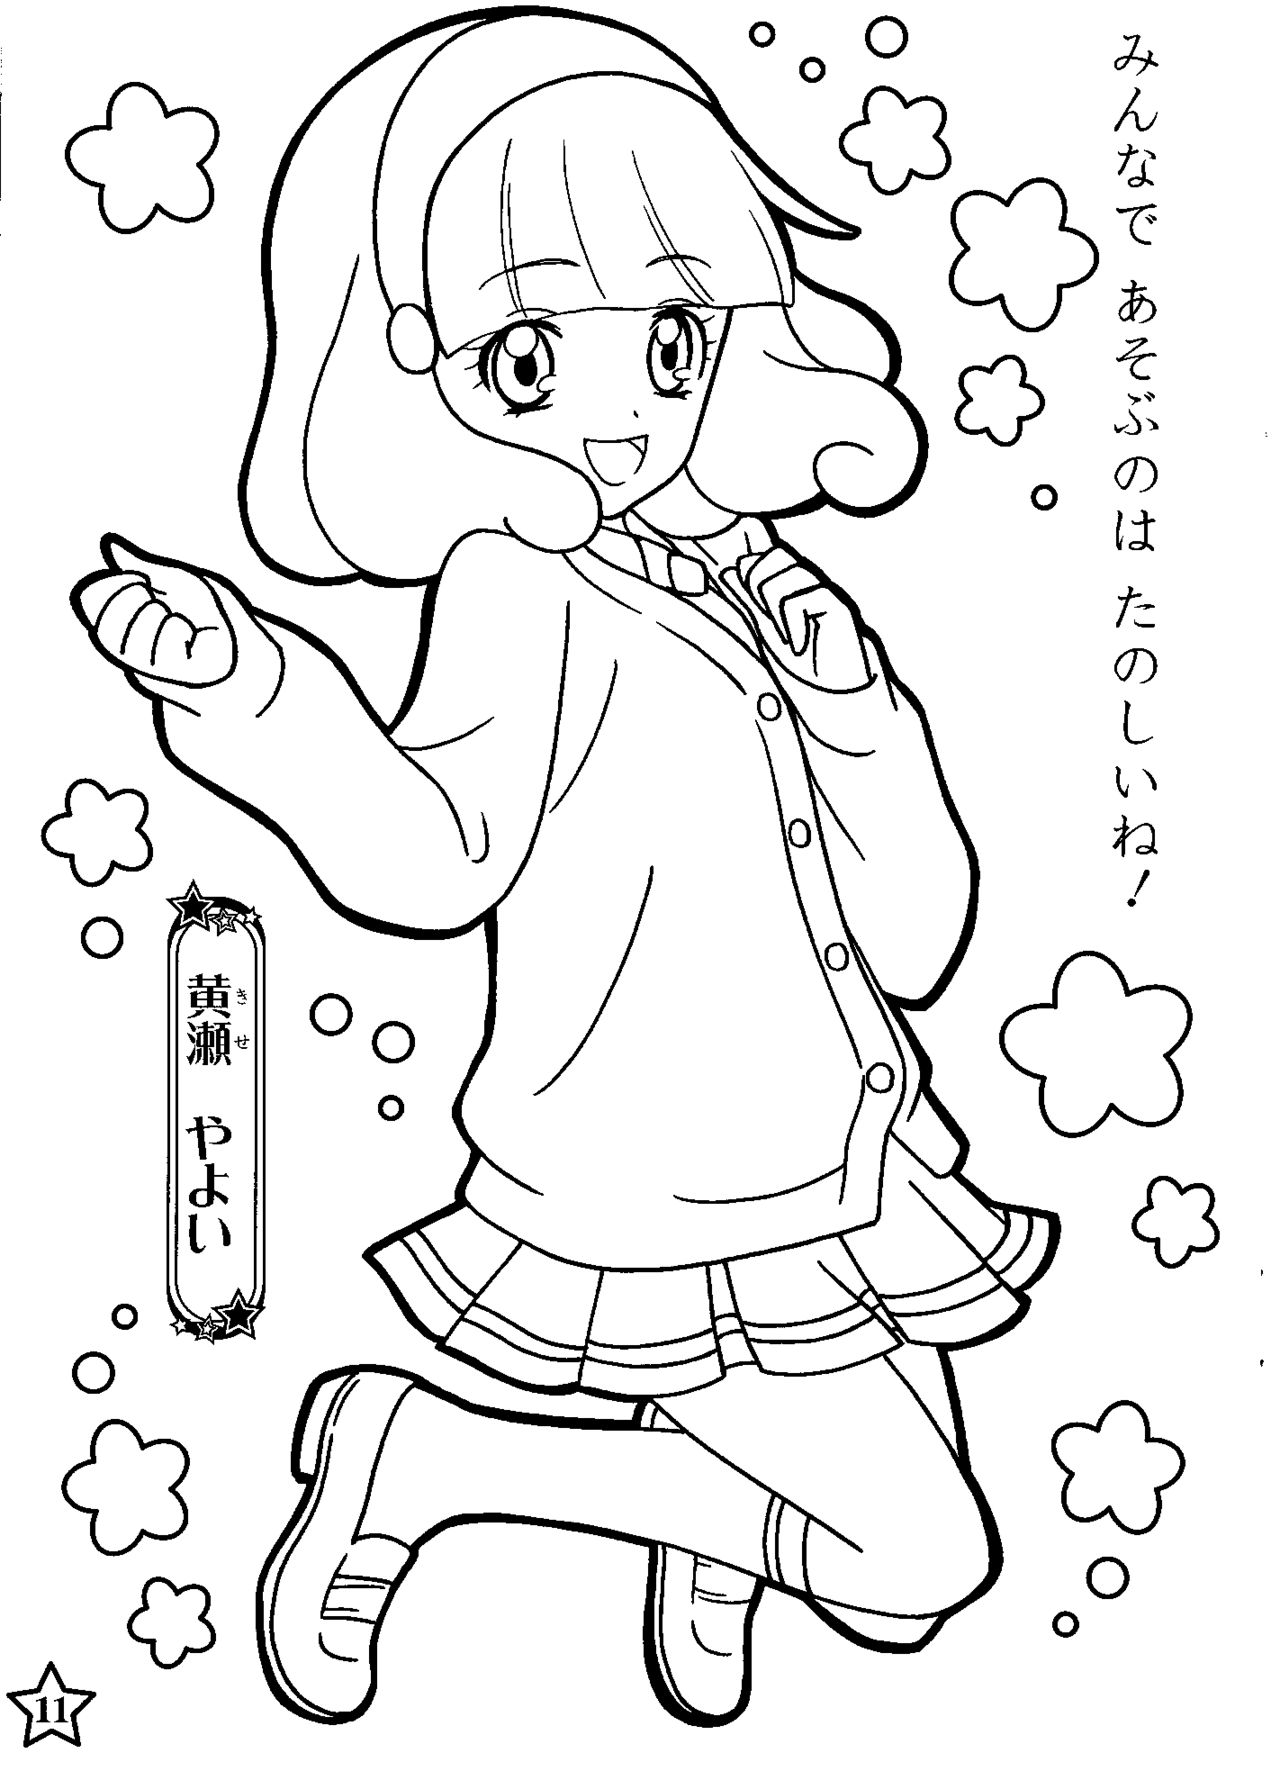 New York New Years Coloring Page Coloring Pages Sailor Moon Coloring Pages Coloring Pages For Girls Cute Coloring Pages [ 1771 x 1280 Pixel ]